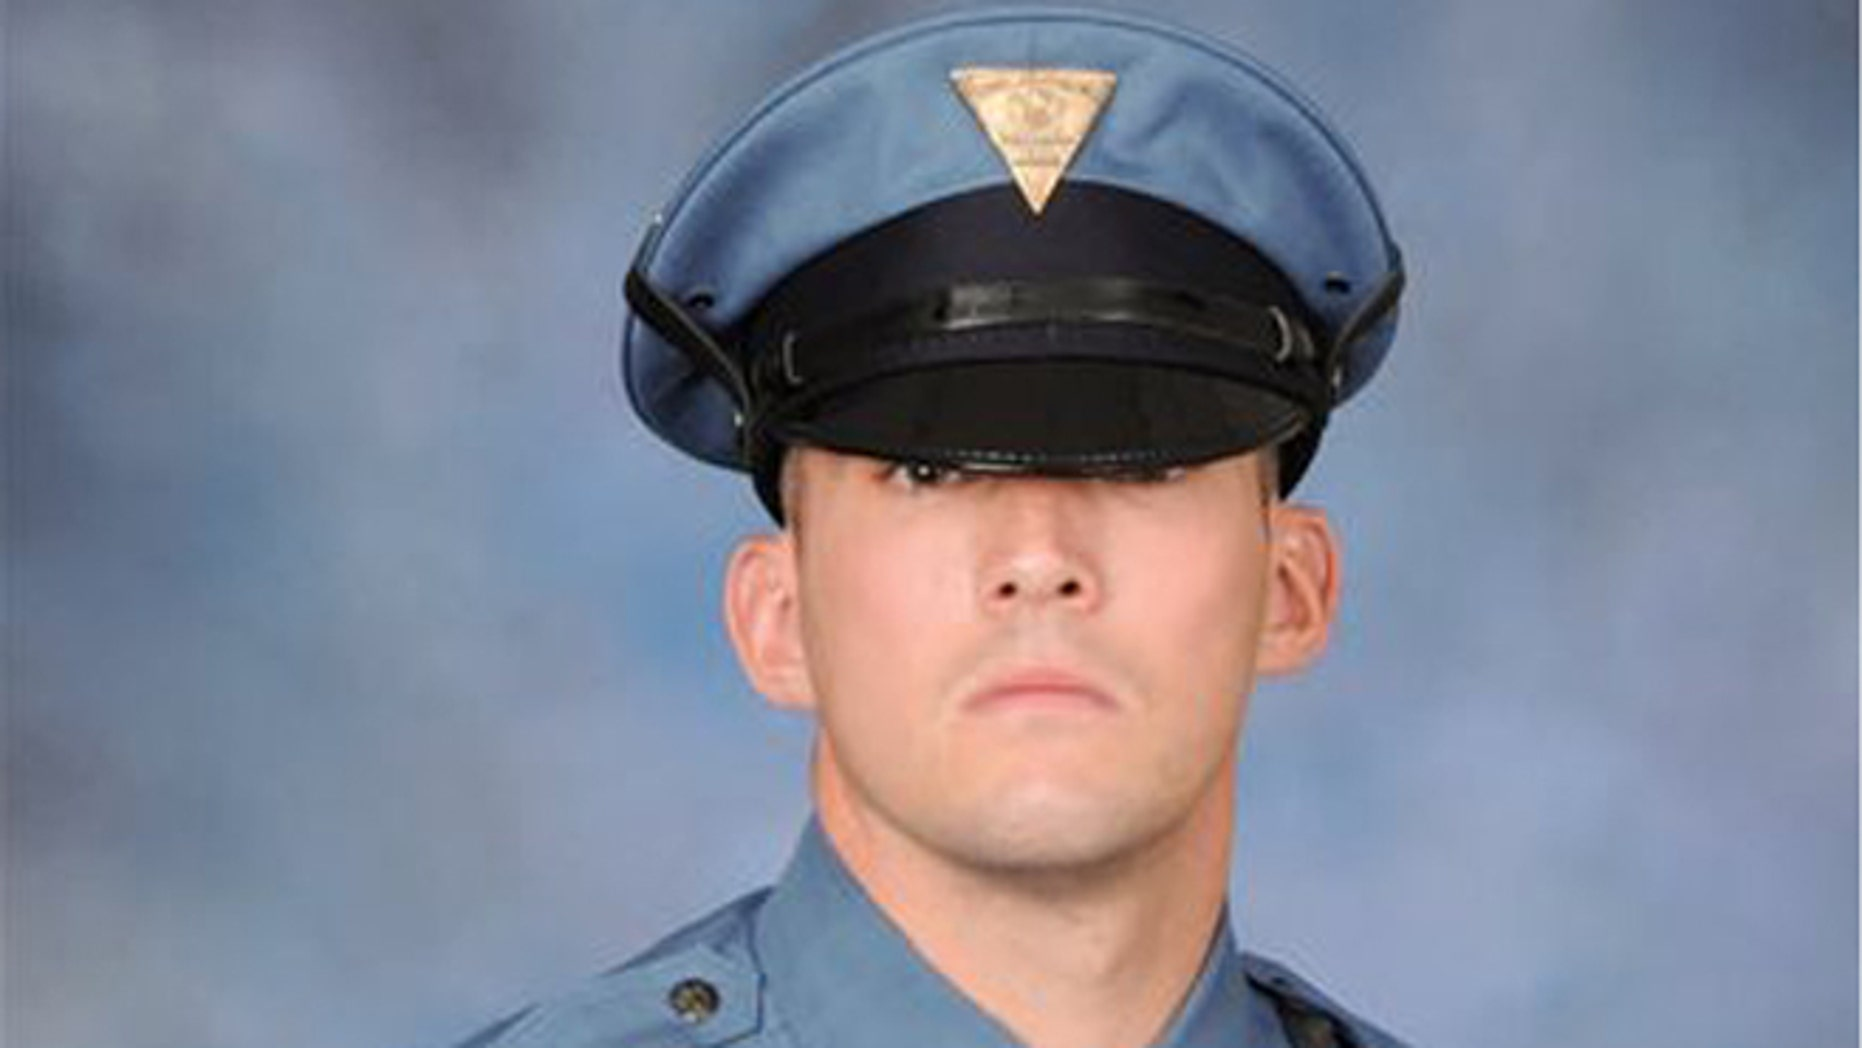 New Jersey State Trooper Sean Cullen died March 8 from severe head injuries after he was struck by a passing car.